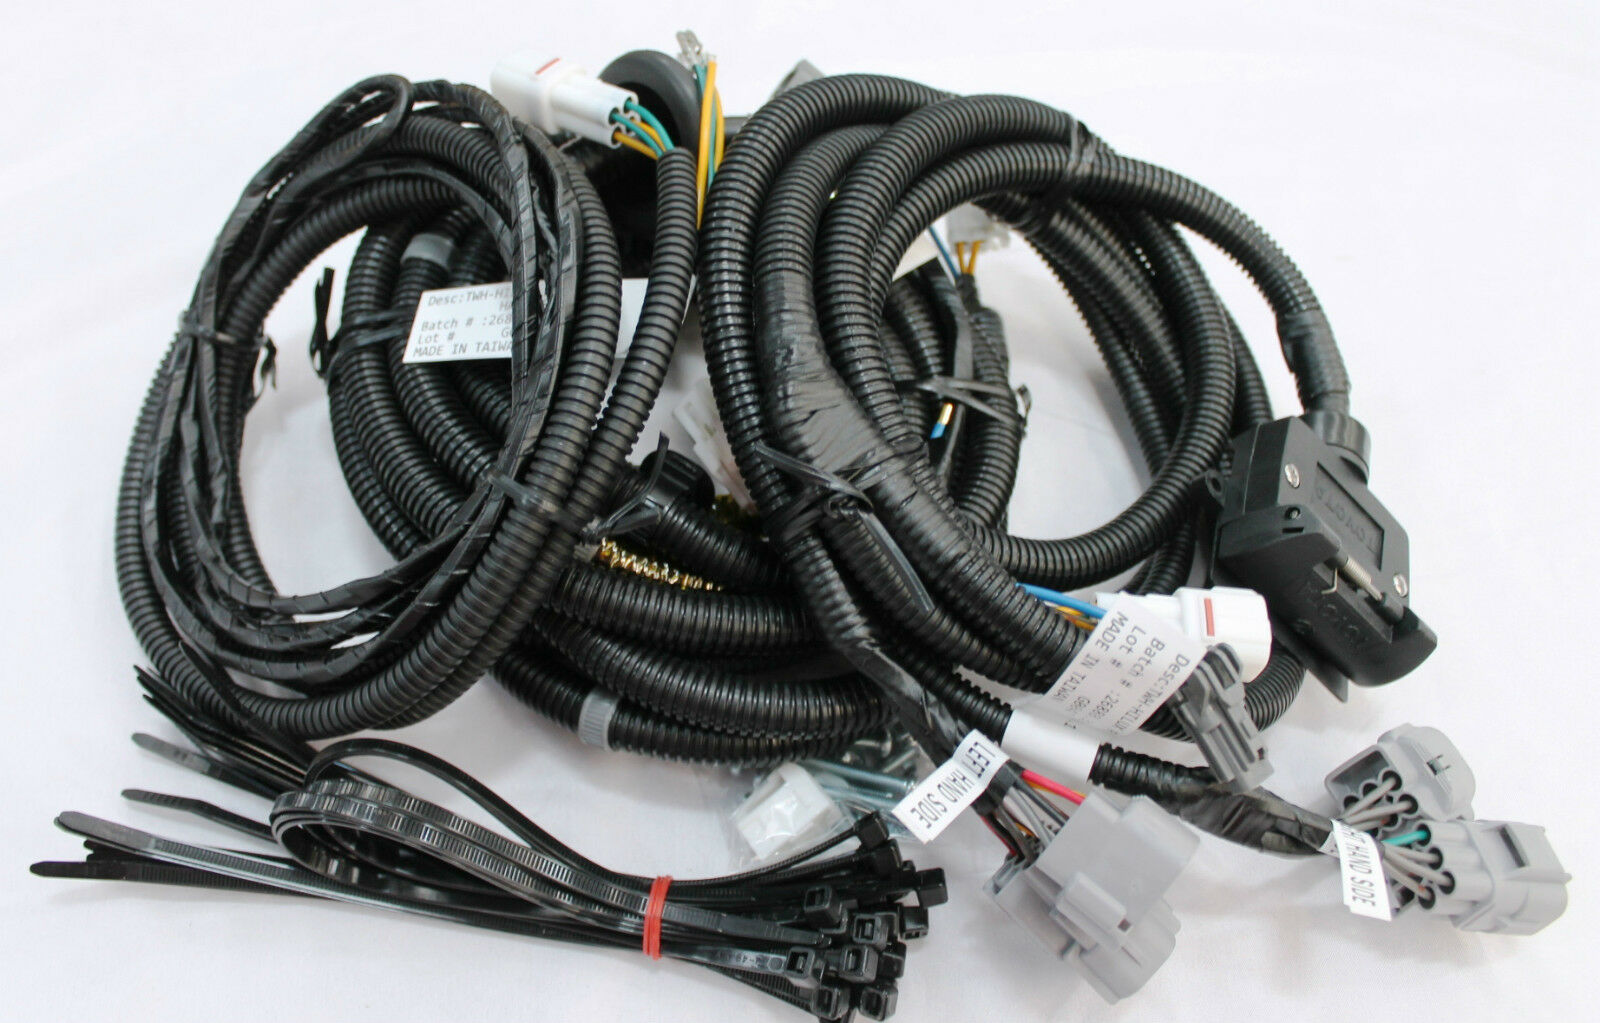 Toyota Hilux Towbar Wiring Harness 7 Flat Wmate Sr Sr5 Black Feb 05 July 15 1 Of 5only Available